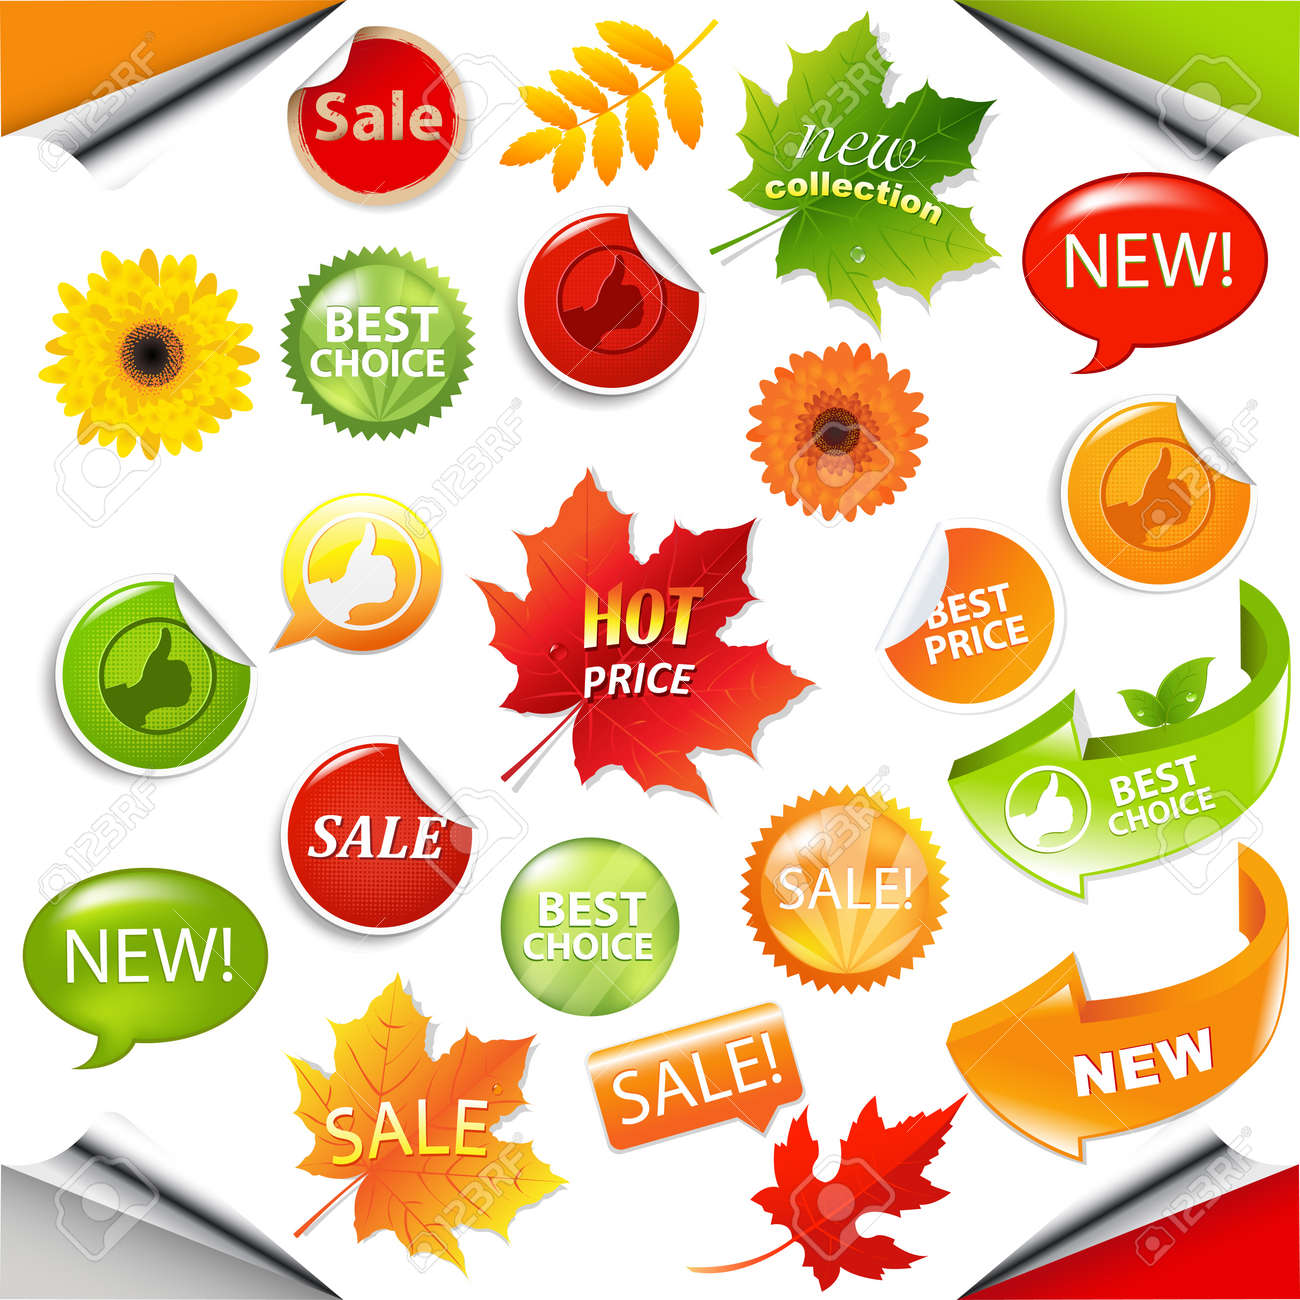 Autumn Collection Sale Elements With Leaves, Vector Illustration Stock Vector - 15155477